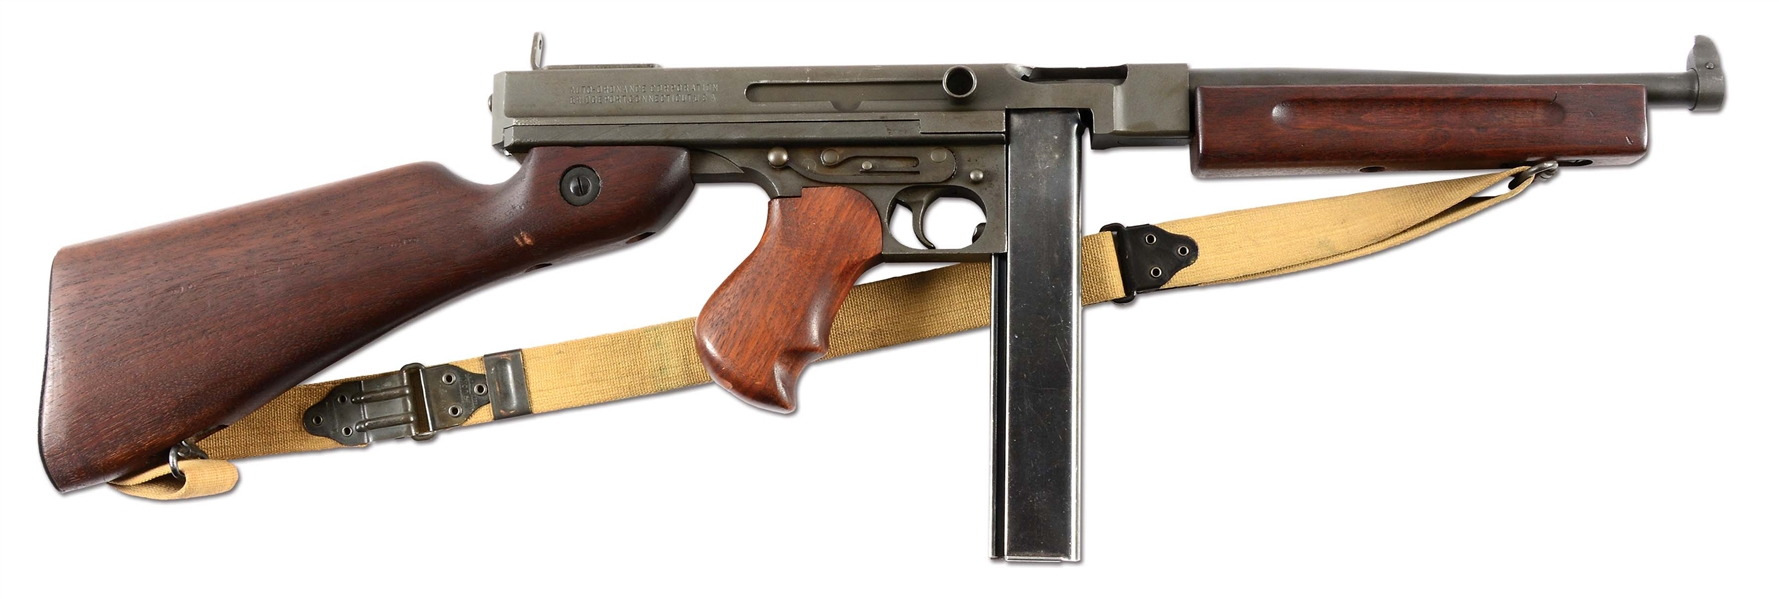 (N) ATTRACTIVE ARSENAL REFINISHED RARE M1 MODEL THOMPSON MACHINE GUN FROM WORLD WAR II ERA (CURIO AND RELIC).